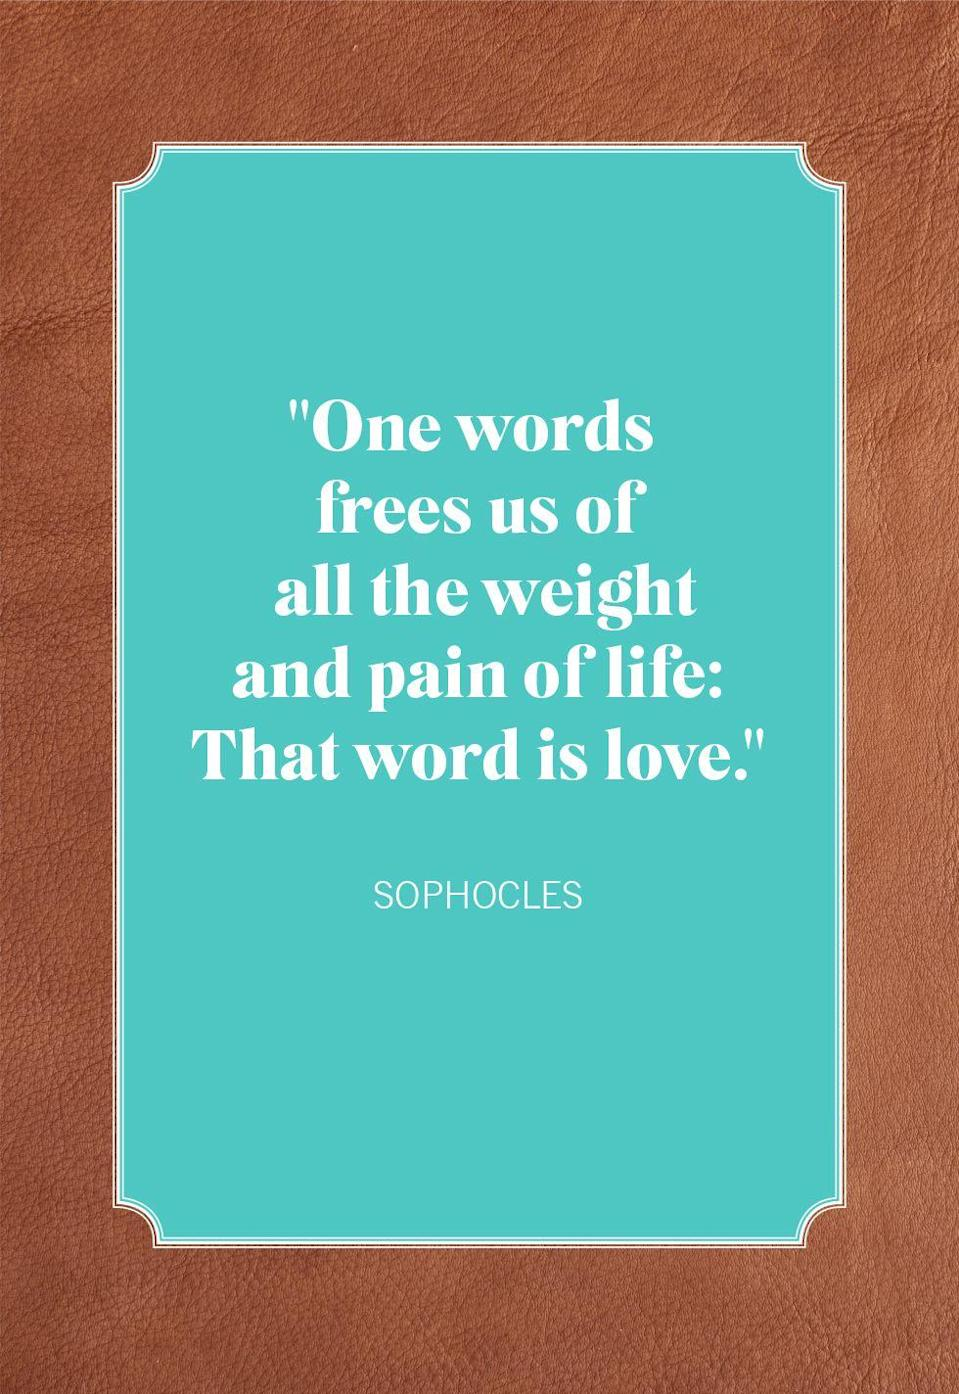 "<p>""One words frees us of all the weight and pain of life: That word is love.""</p>"